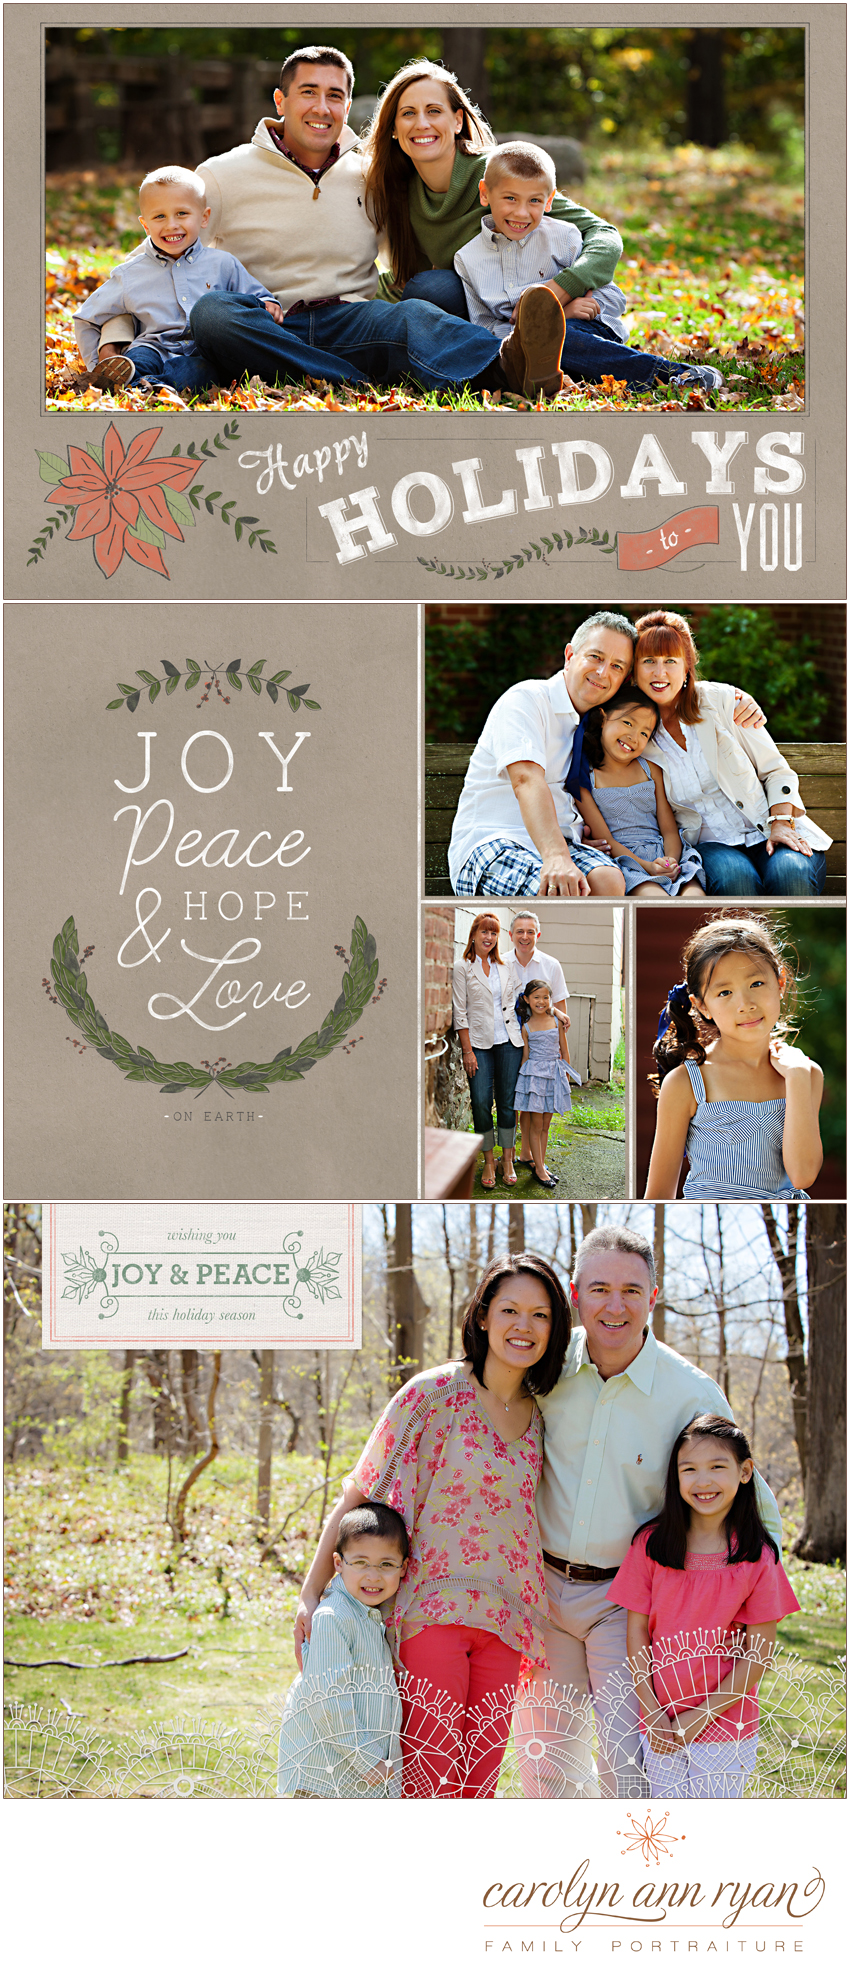 The Carolinas Family Photographer shares samples of Holiday Card Designs